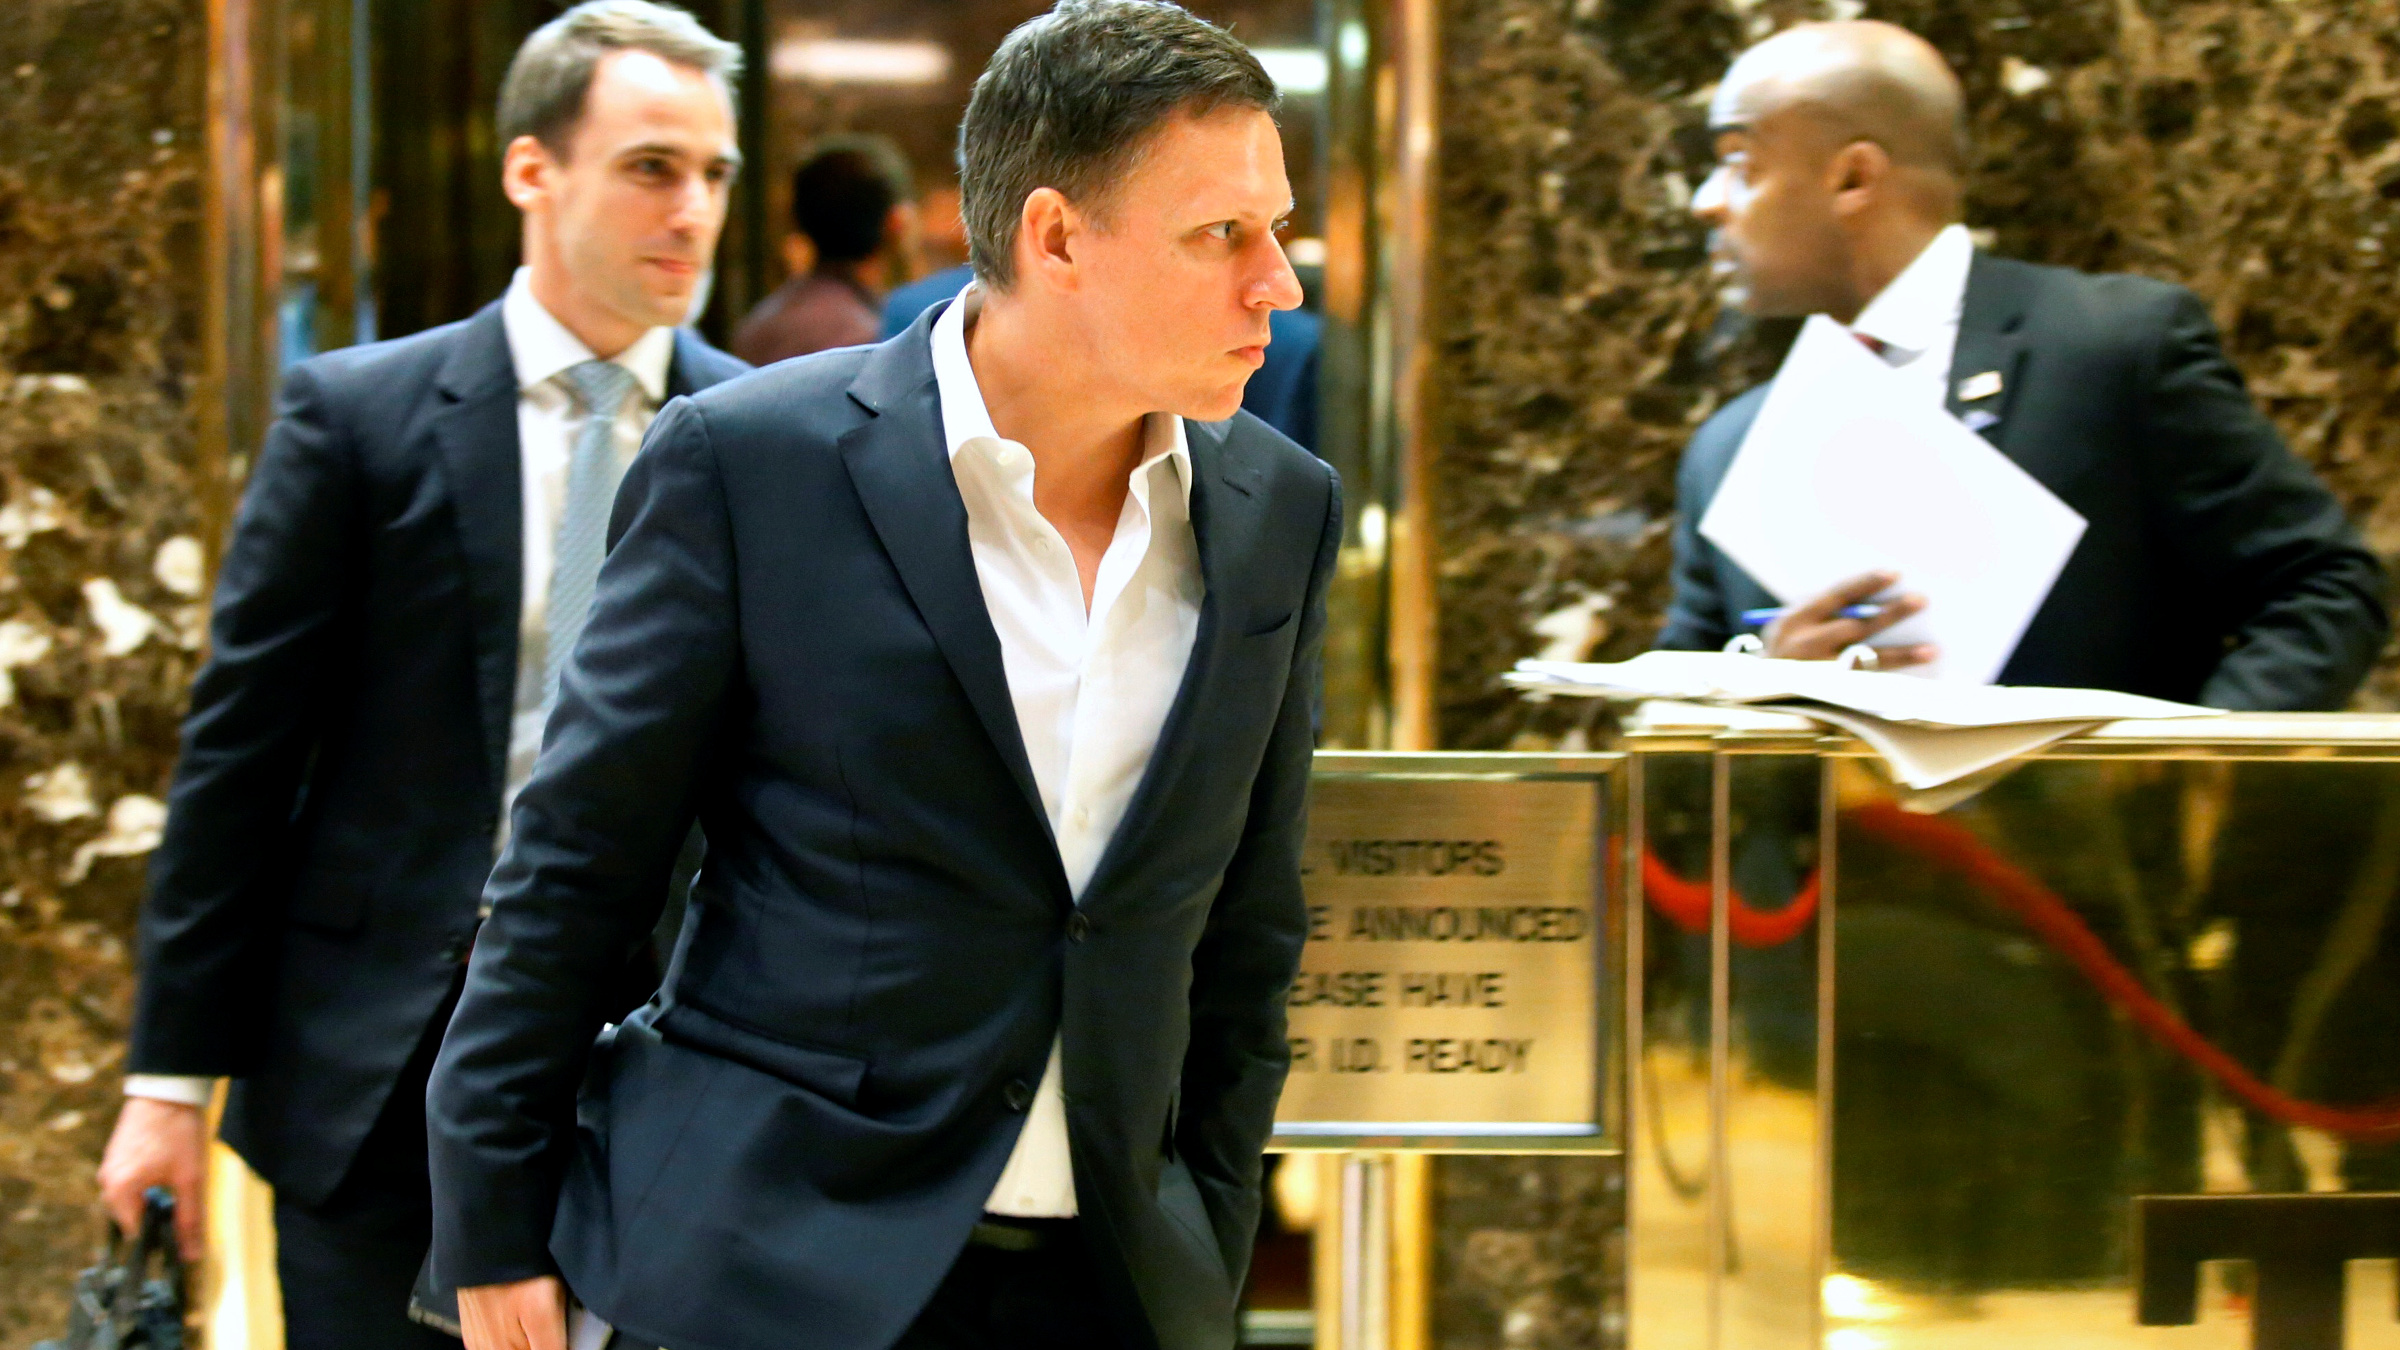 Entrepreneur and investor Peter Thiel exits an elevator after a meeting at Trump Tower in New York, U.S. November 16, 2016.